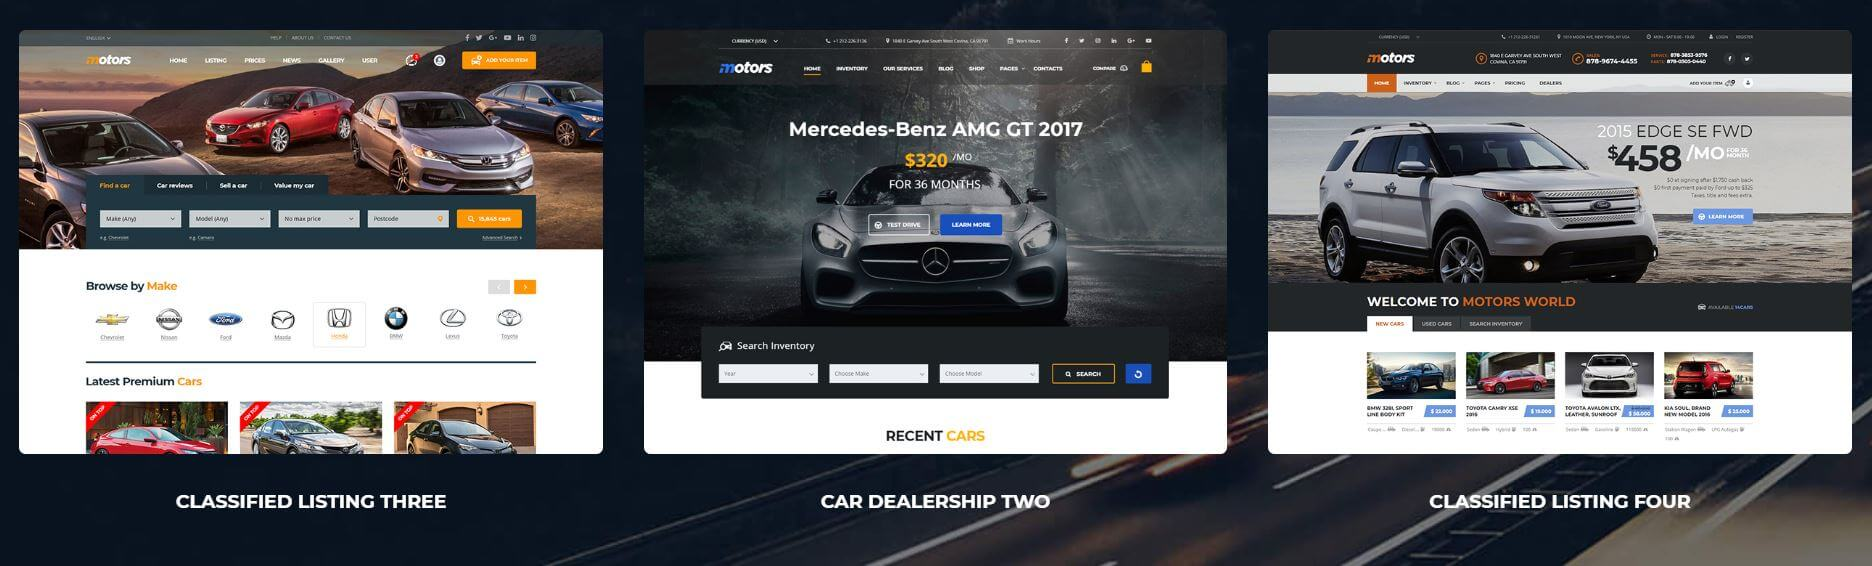 Motors - Cars Rental Classifieds wordpress theme